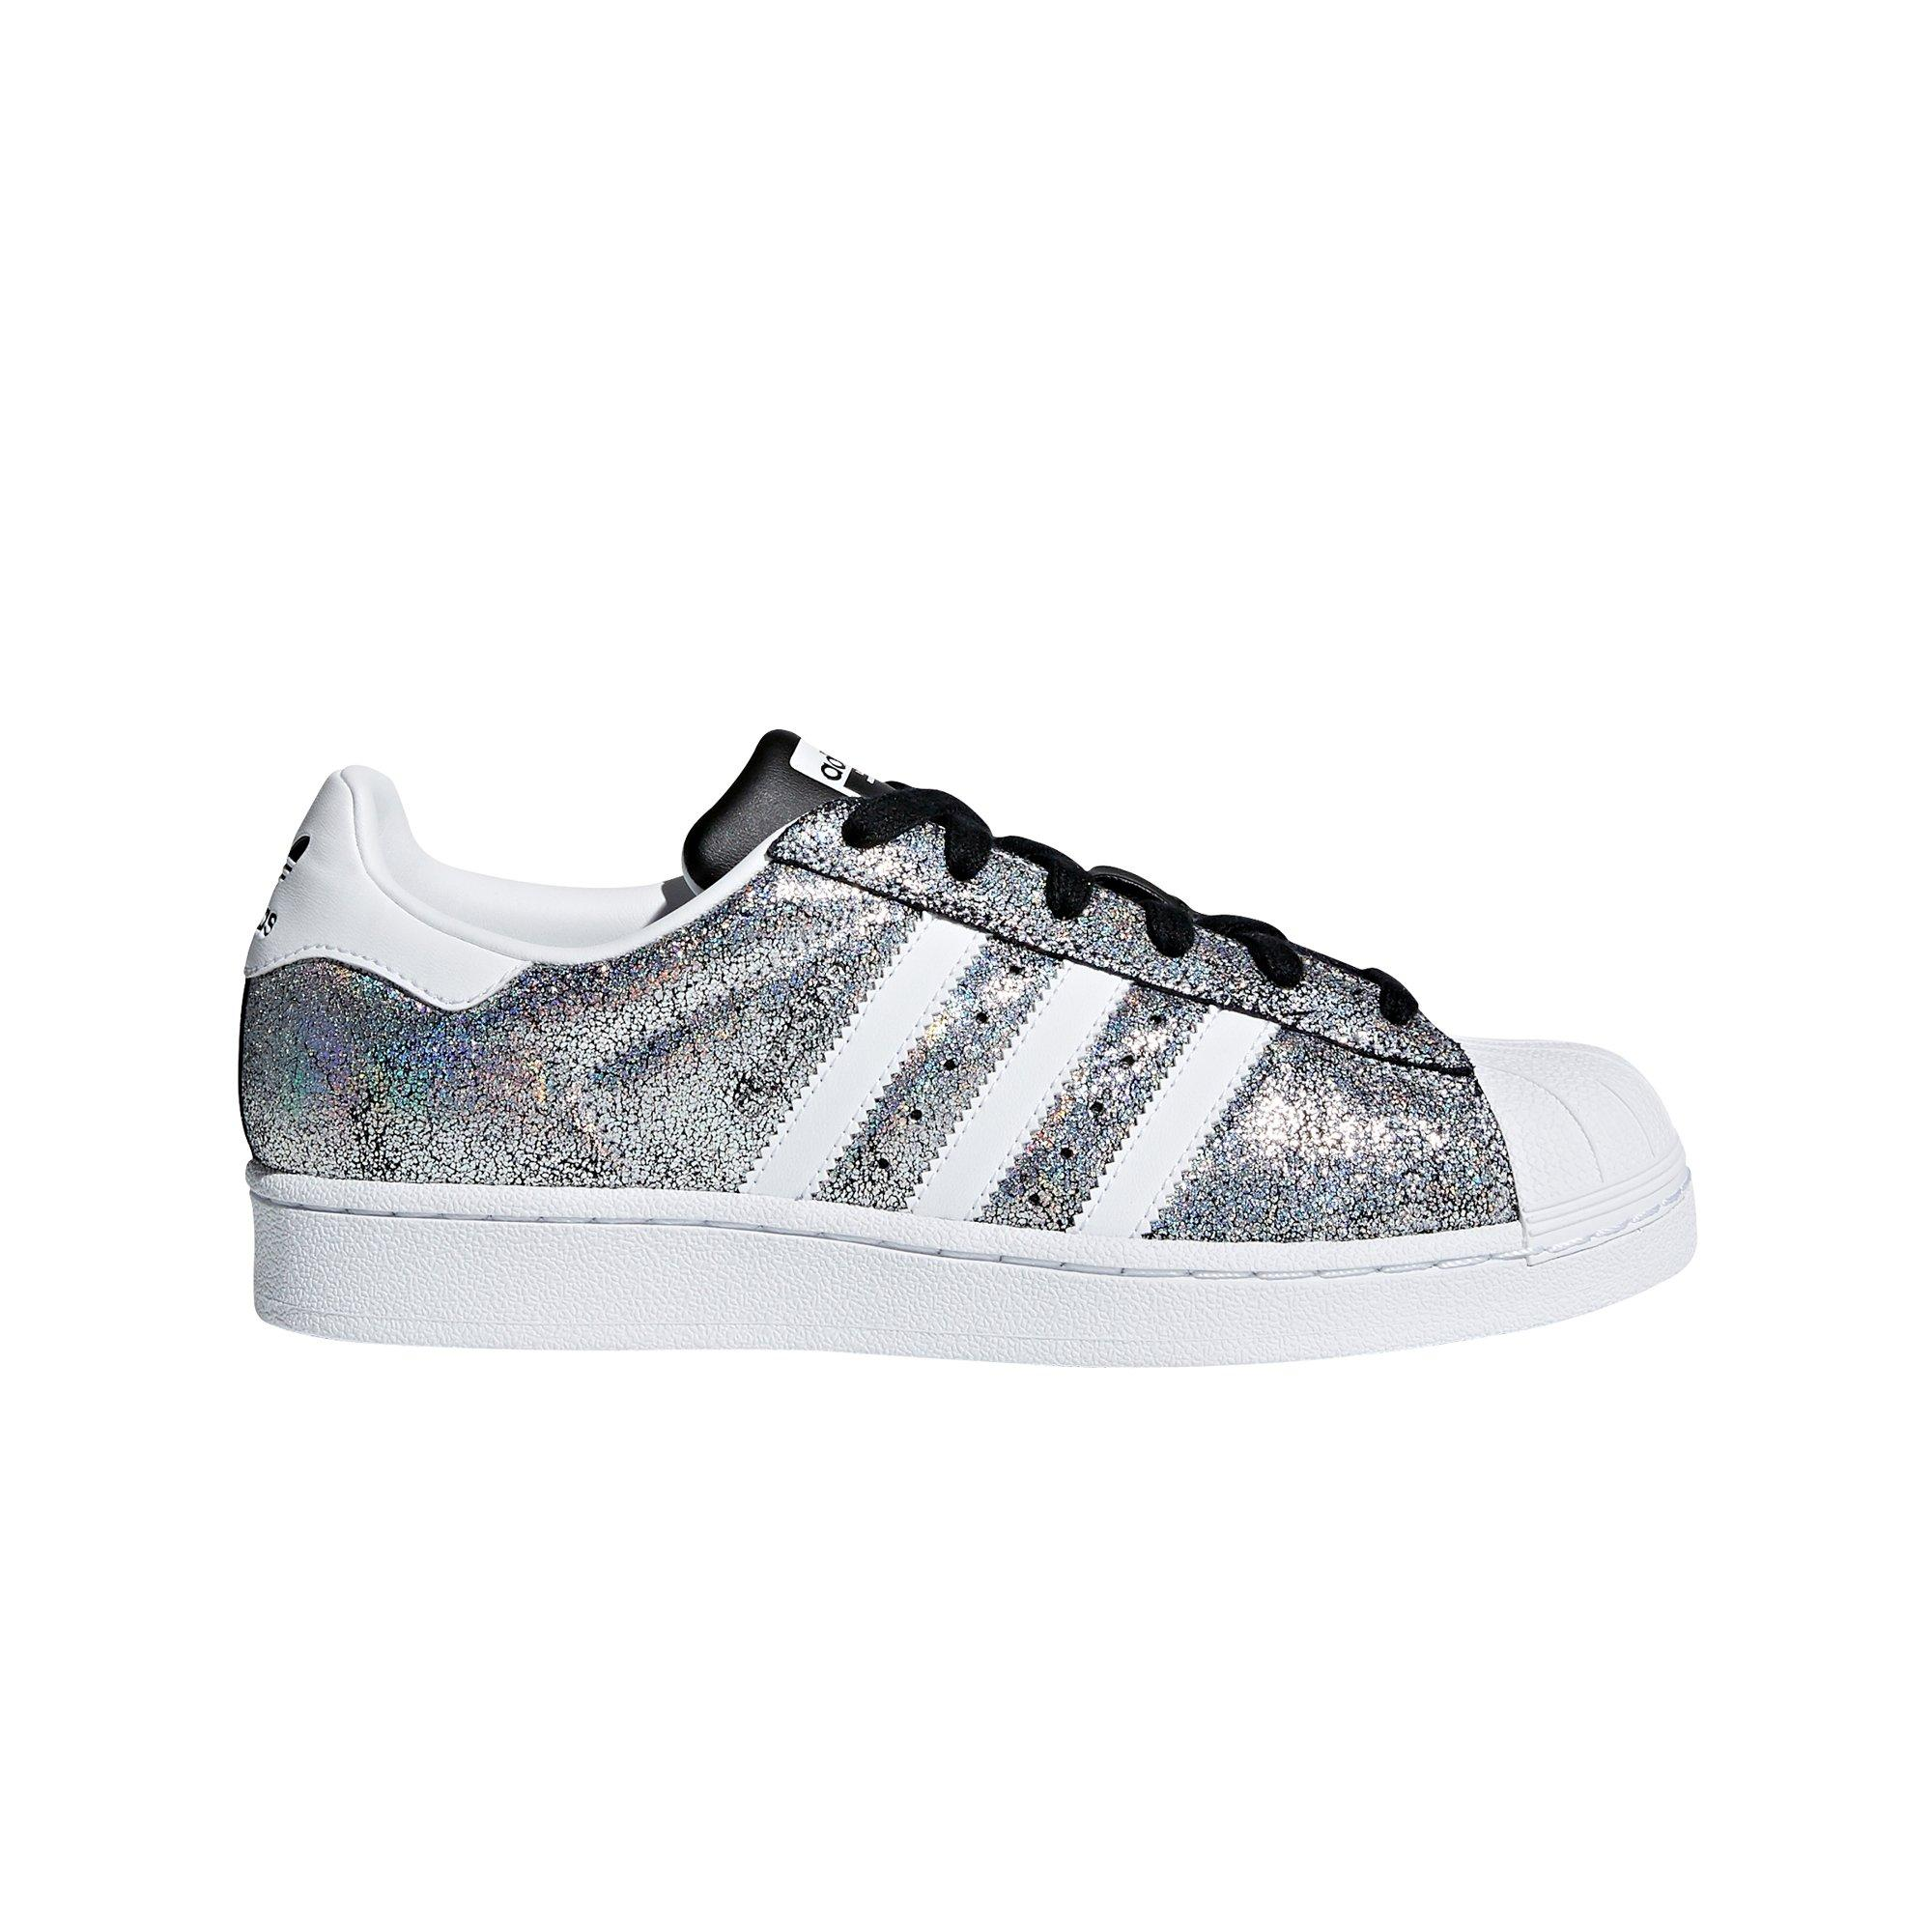 Programmable Adidas Superstar Price Philippines 2016 Adidas